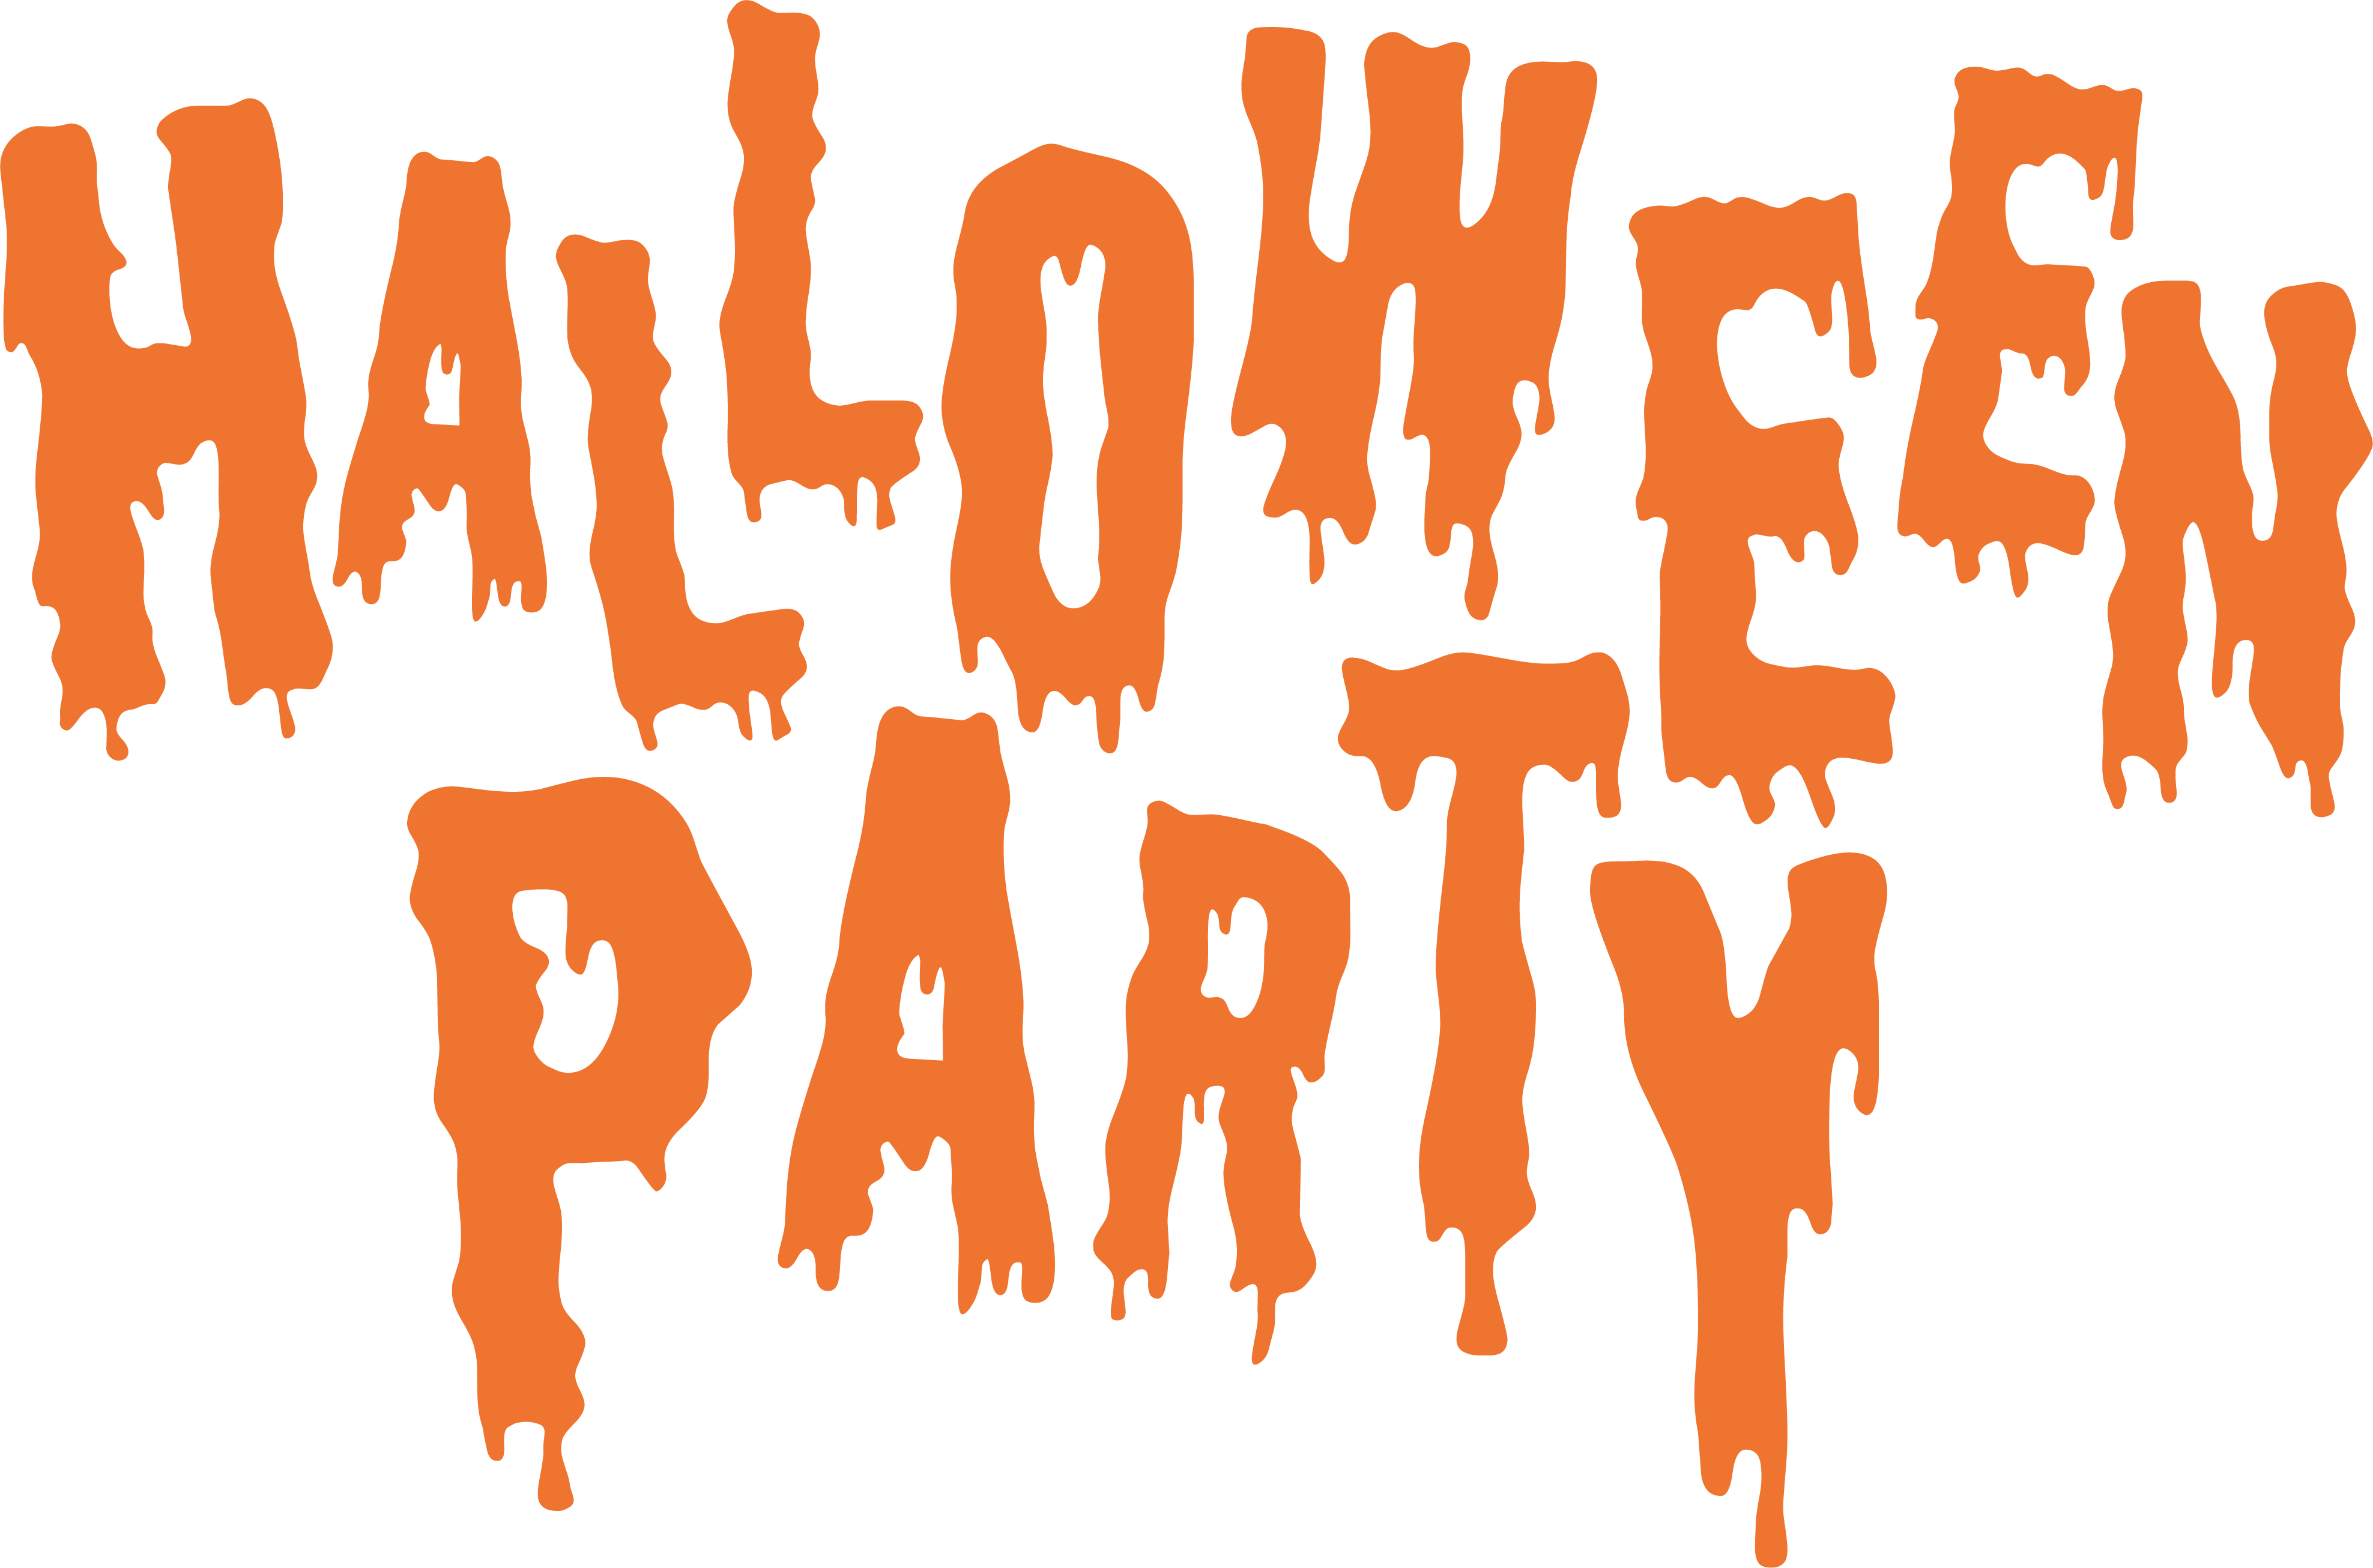 Halloween party clipart images svg black and white library Halloween Party Clip art - Bloody Halloween party 3952*2612 ... svg black and white library